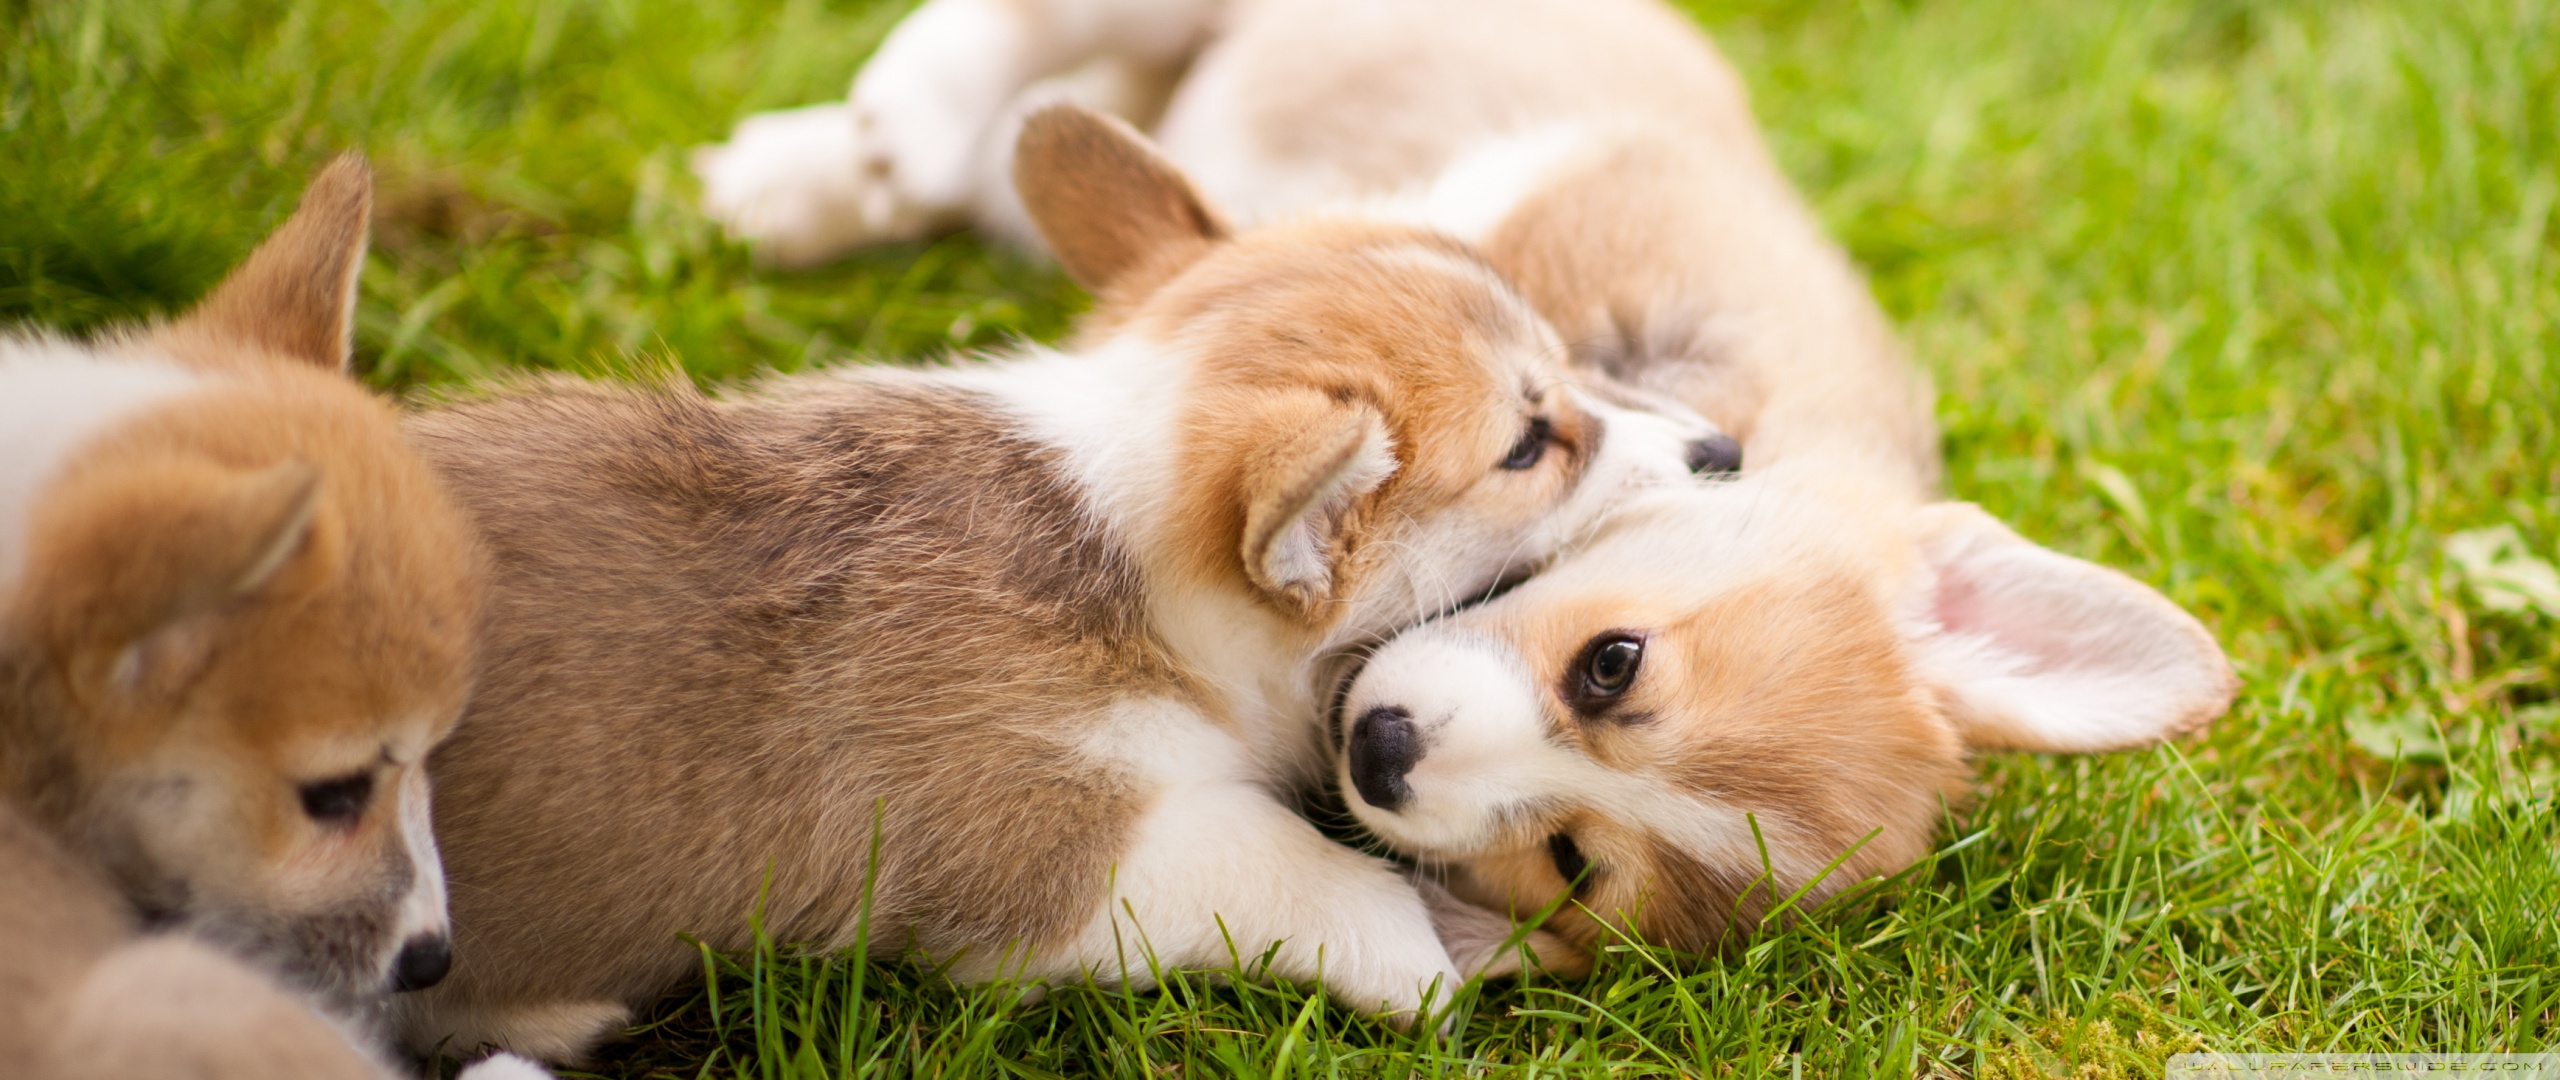 Very Cute Wallpapers For Mobile 240x320 Corgi Puppies 4k Hd Desktop Wallpaper For 4k Ultra Hd Tv